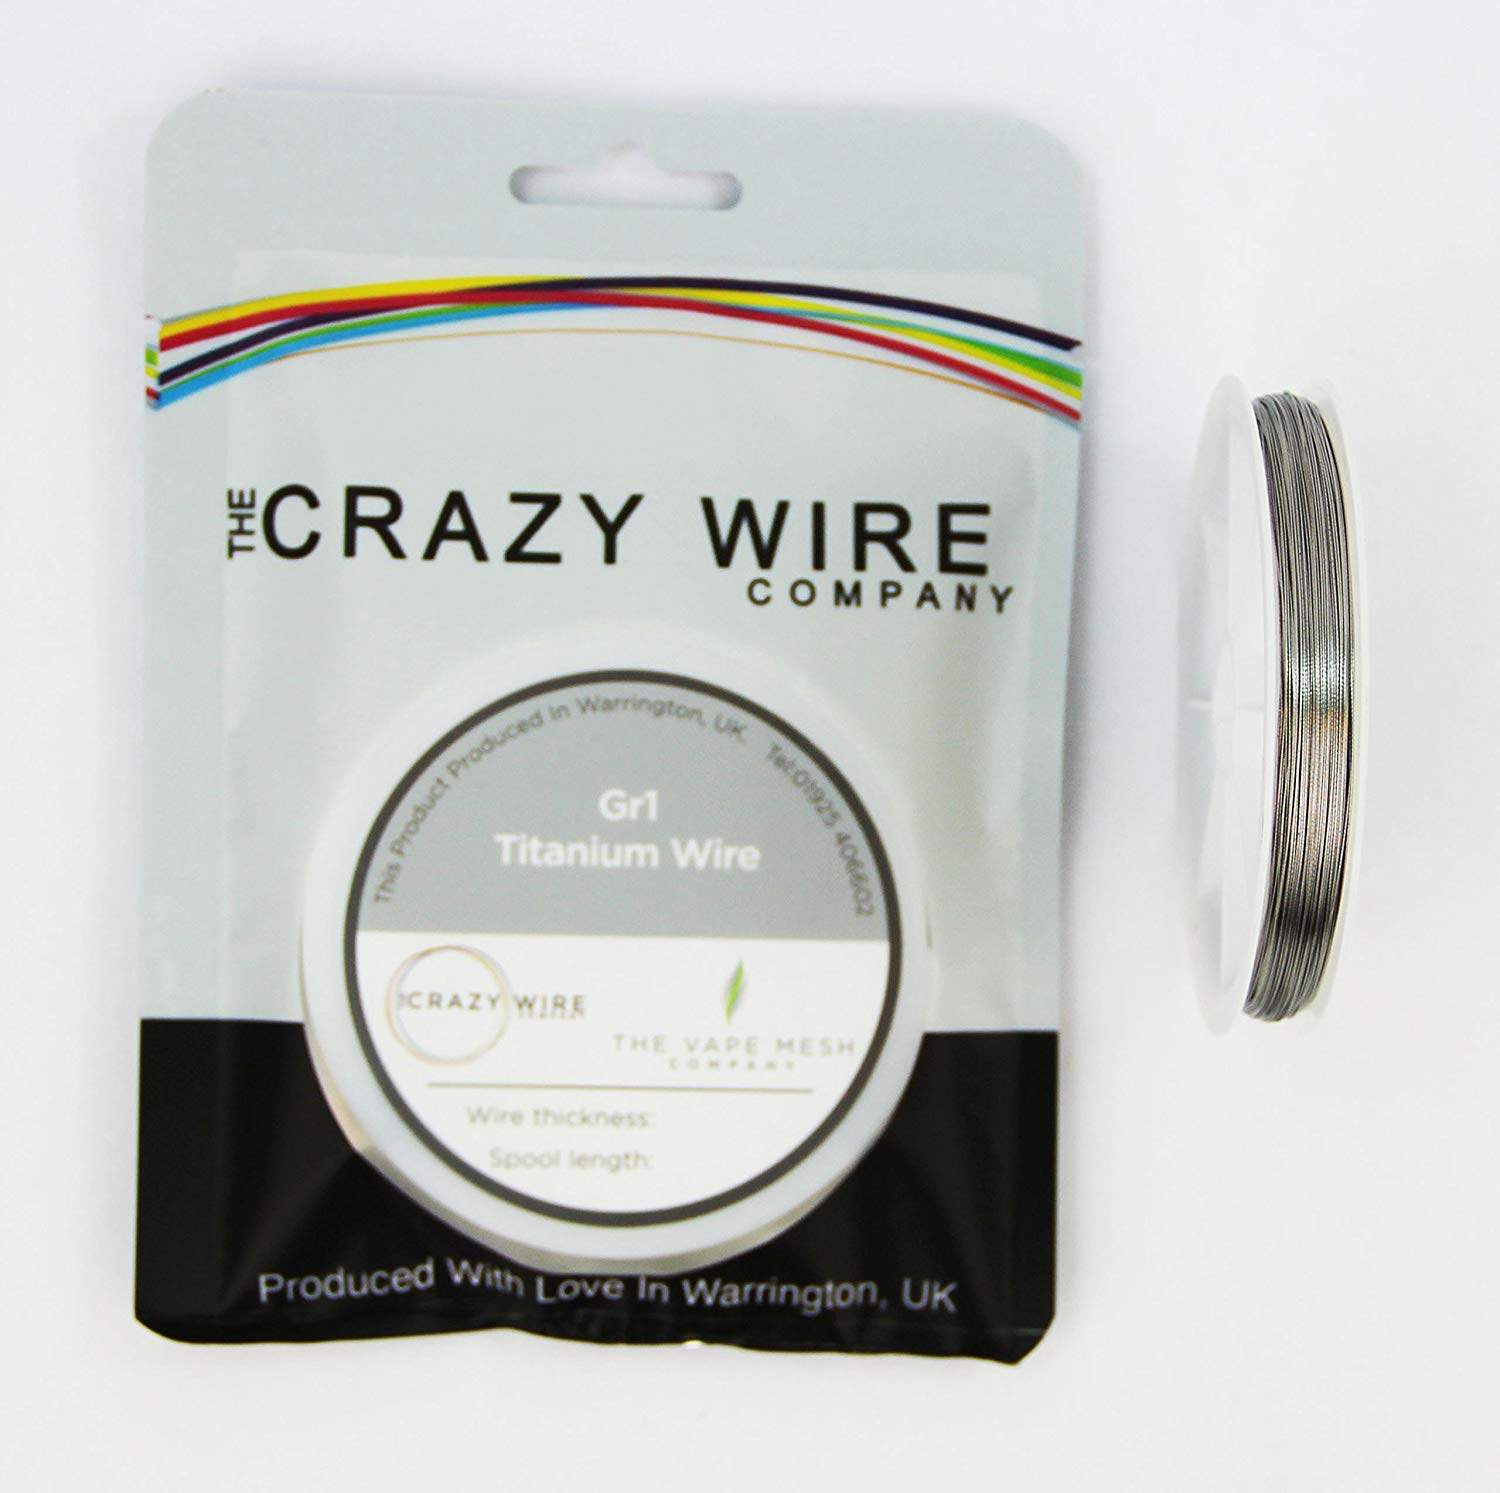 28 AWG (0.3mm) Grade 1 Titanium Vacuum Annealed Wire - 10 Metres (33ft) The Crazy Wire Company